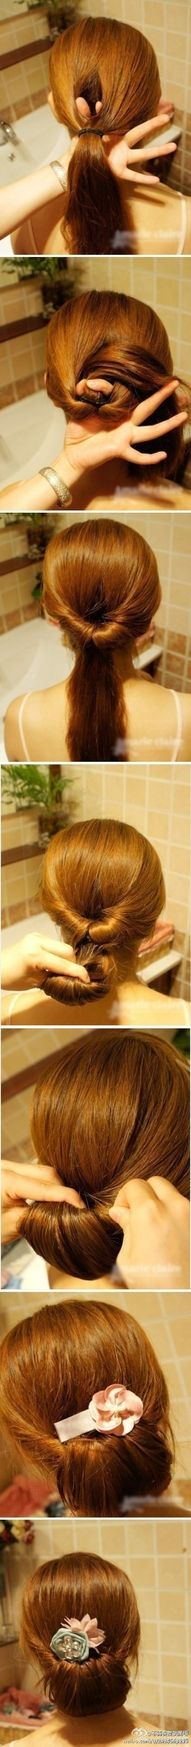 my sister and i totally had the little thing that did this to your pony tails! love.